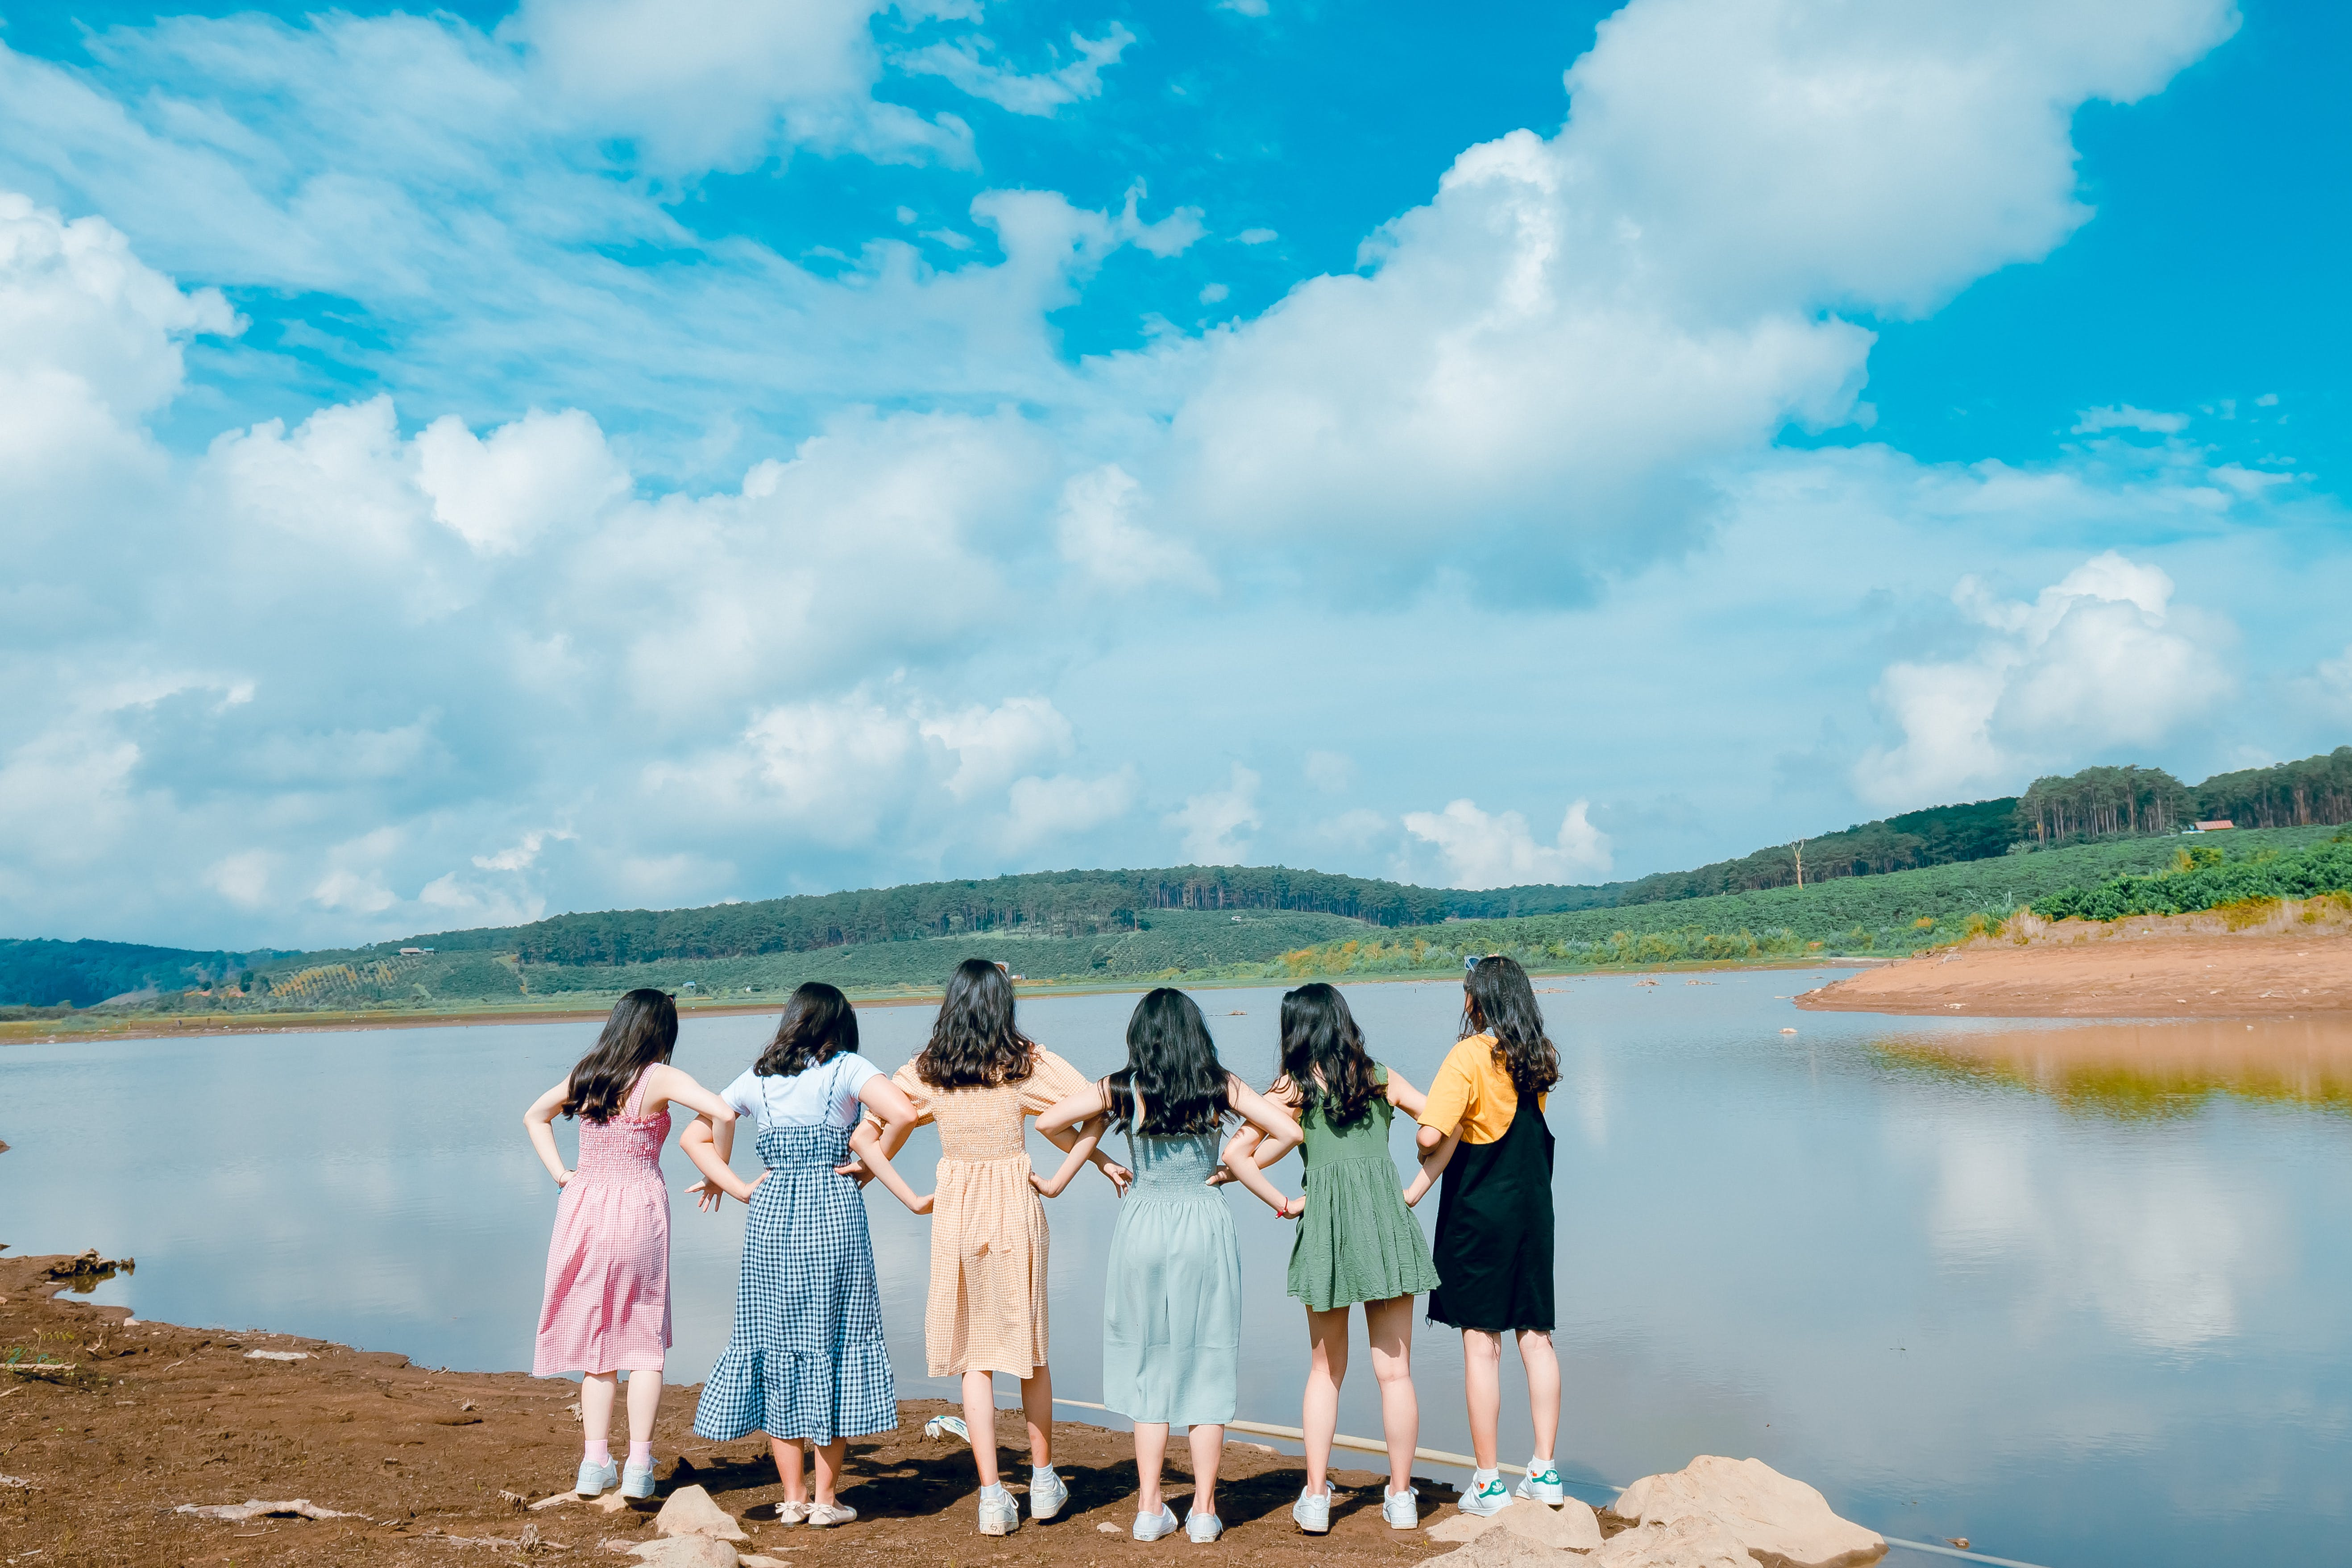 Six Girl's Standing in Front of Lake